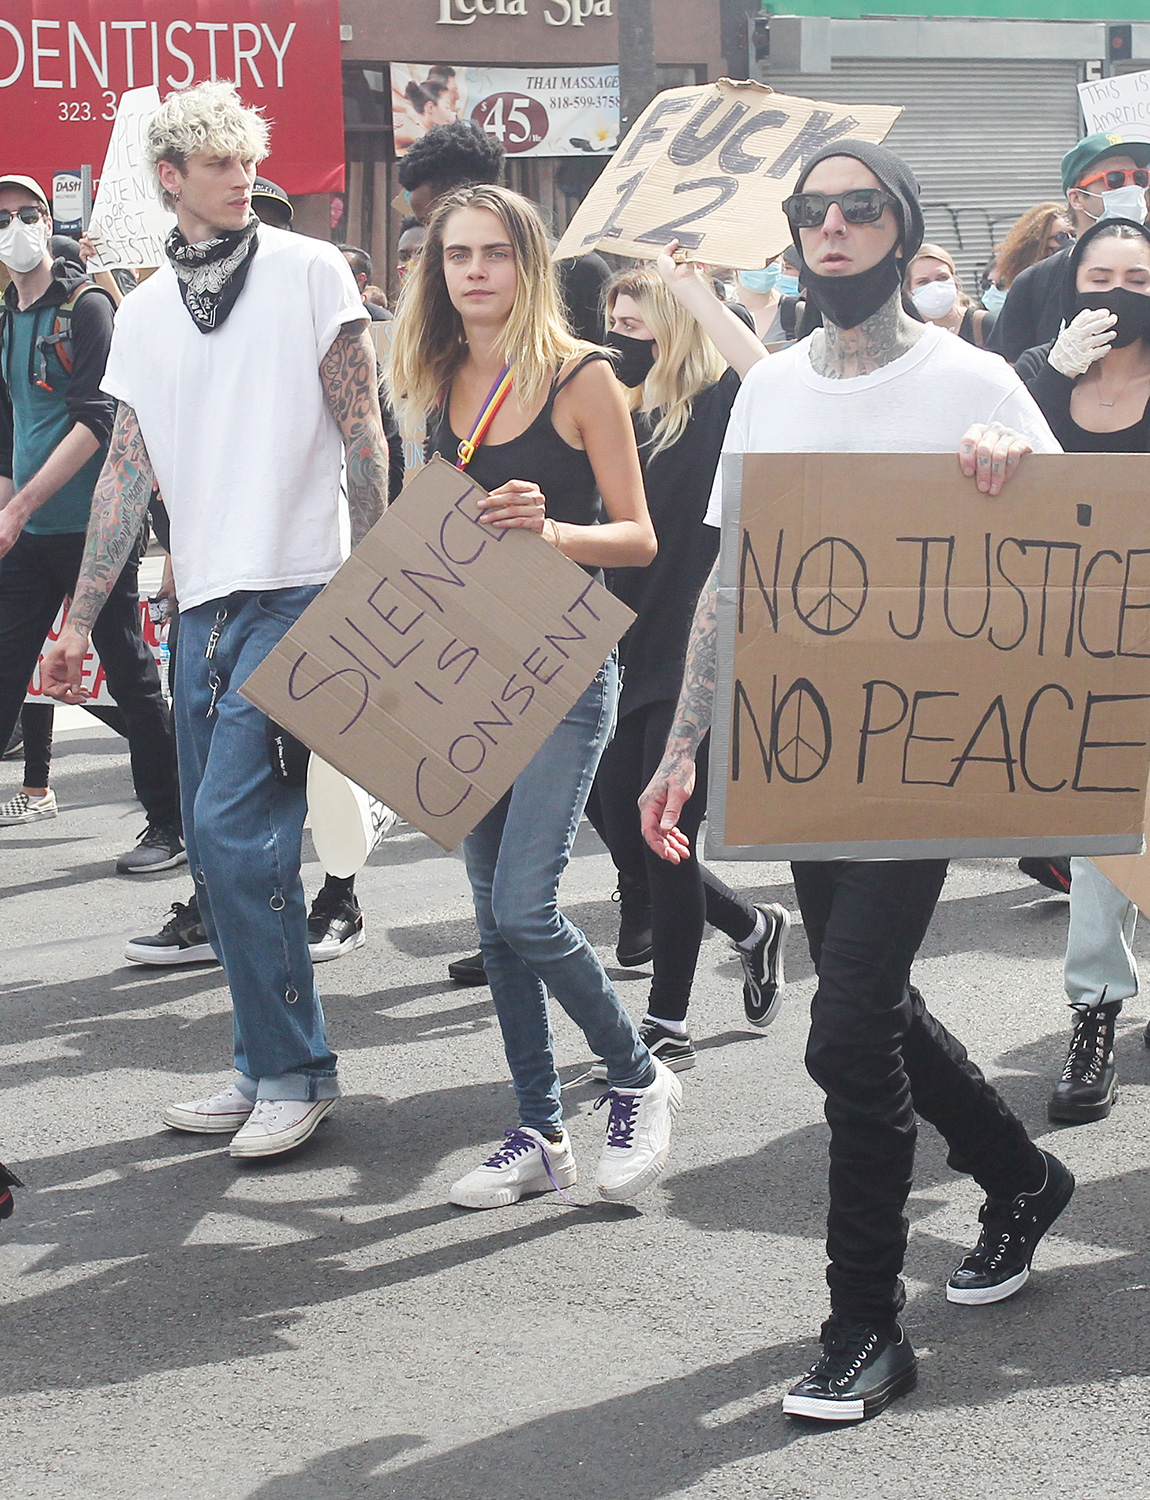 Cara Delevingne Joins Travis Barker And Machine Gun Kelly At A George Floyd Protest In Hollywood